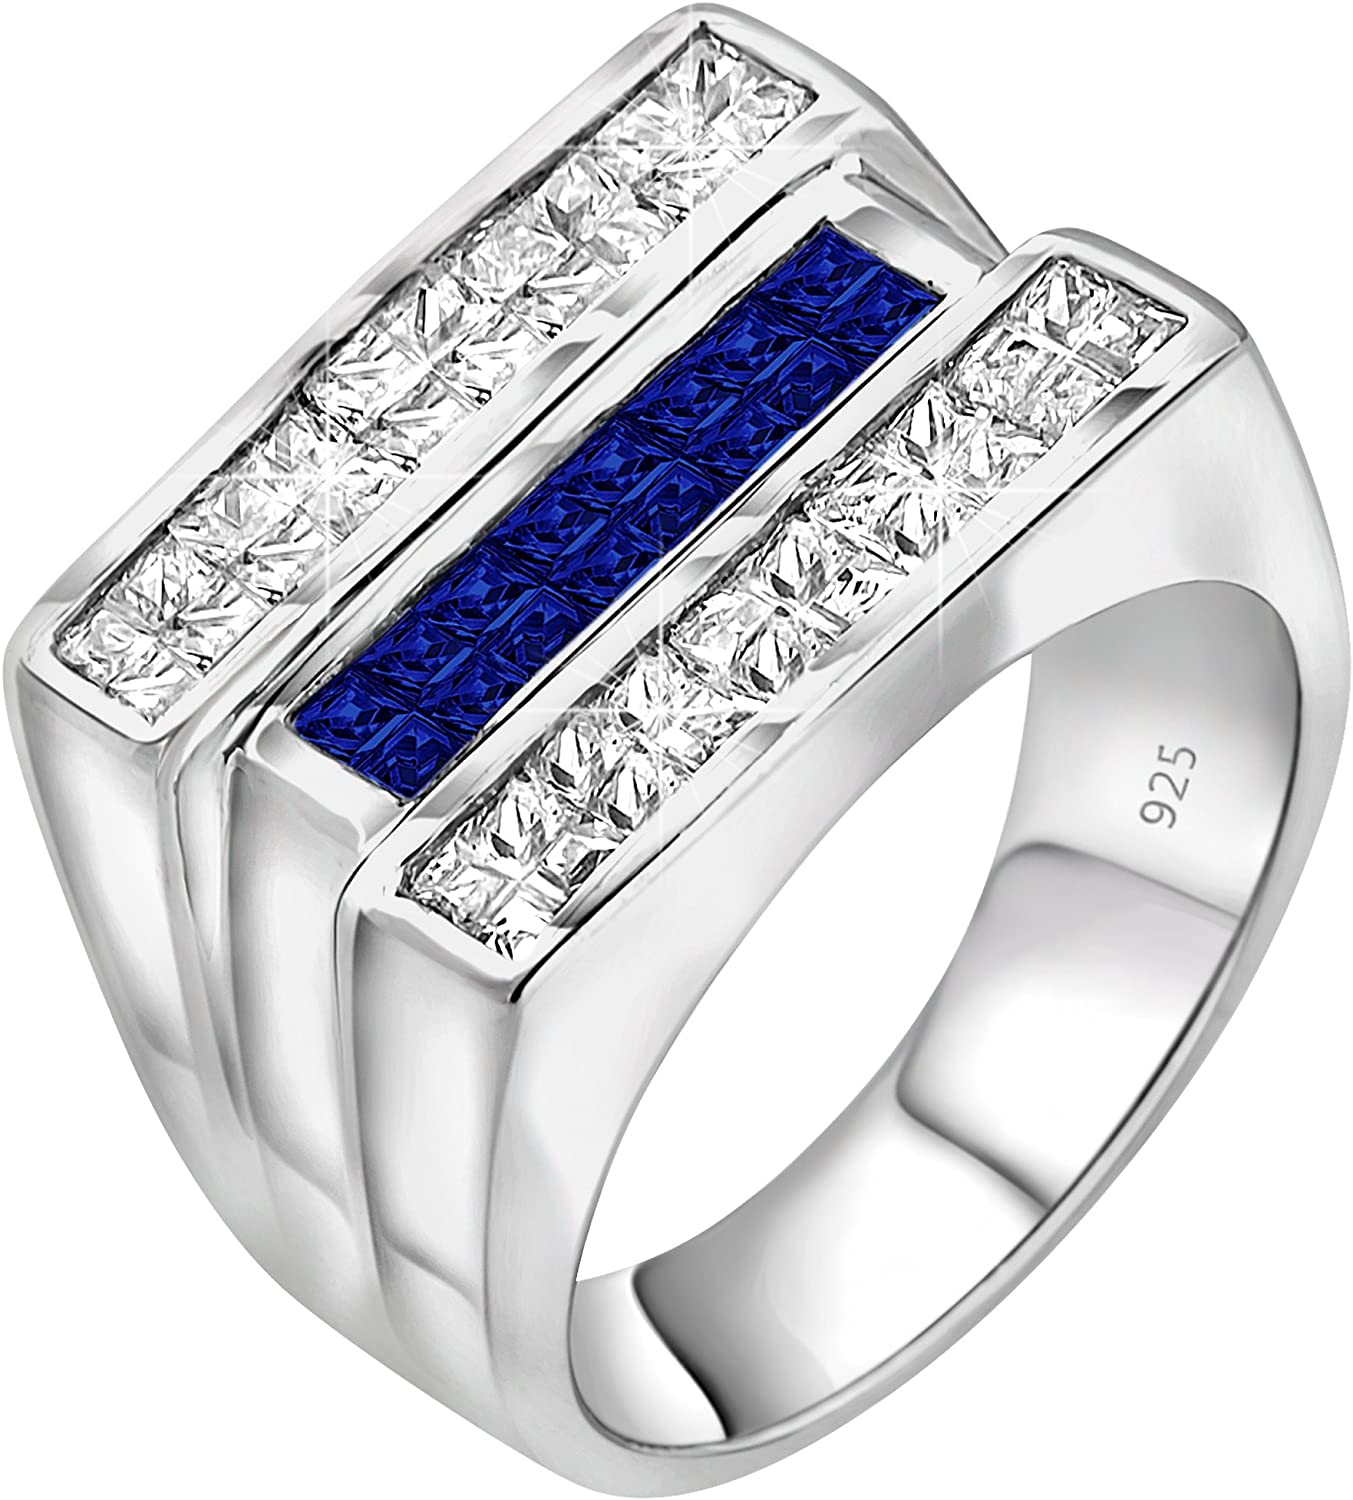 Men's Sterling Silver .925 Triple Row Ring White and Blue Invisible Channel Set Cubic Zirconia (CZ) Stones Platinum Plated Jewelry